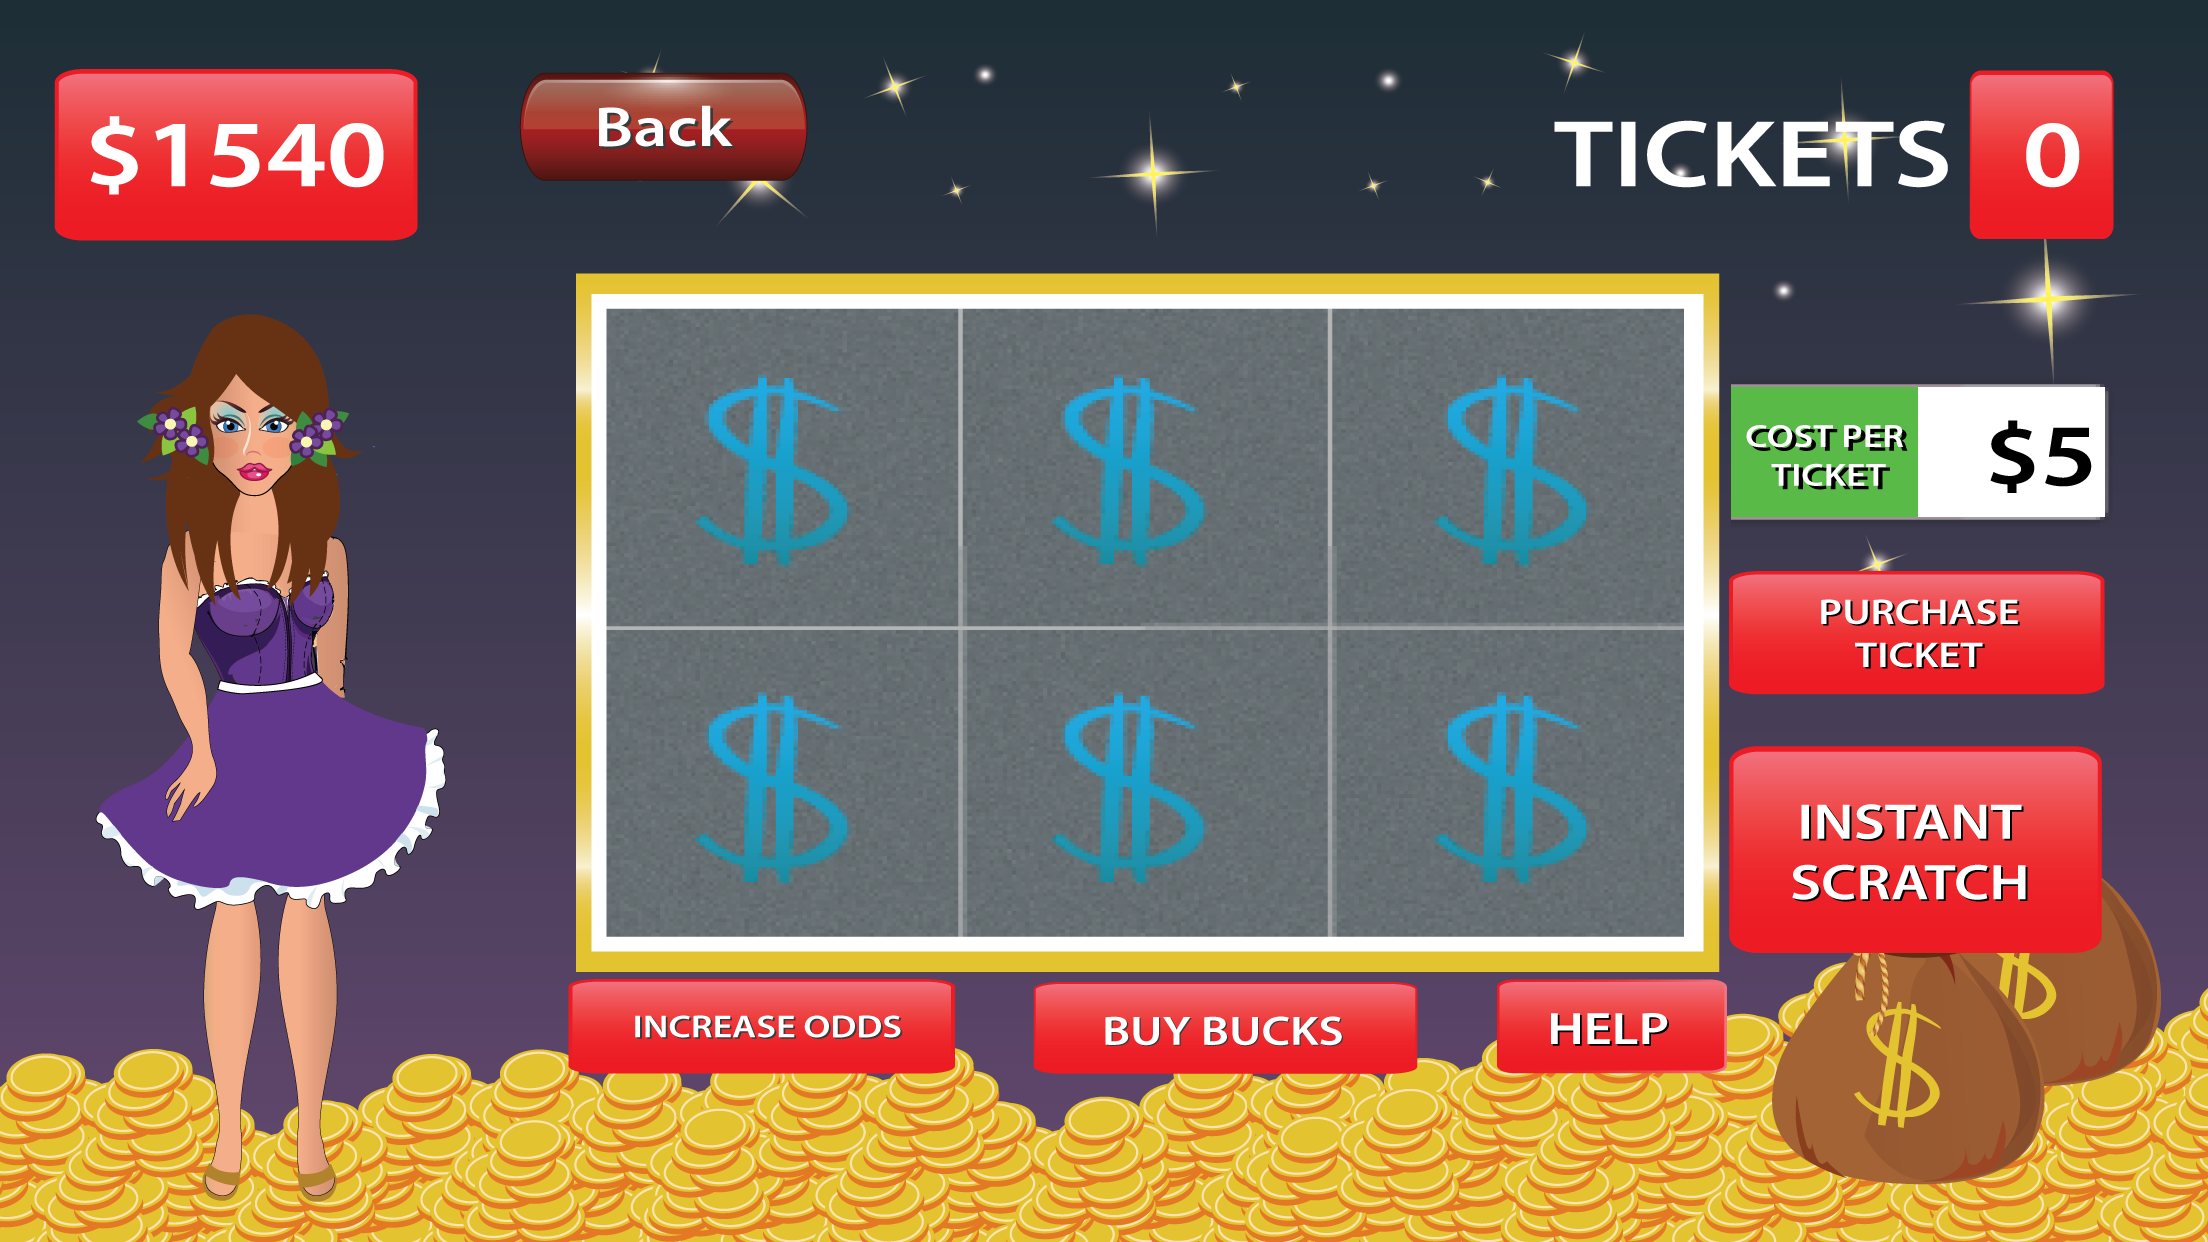 Scratcher Party - Scratch Off the Tickets and Make a Big Win Screenshot